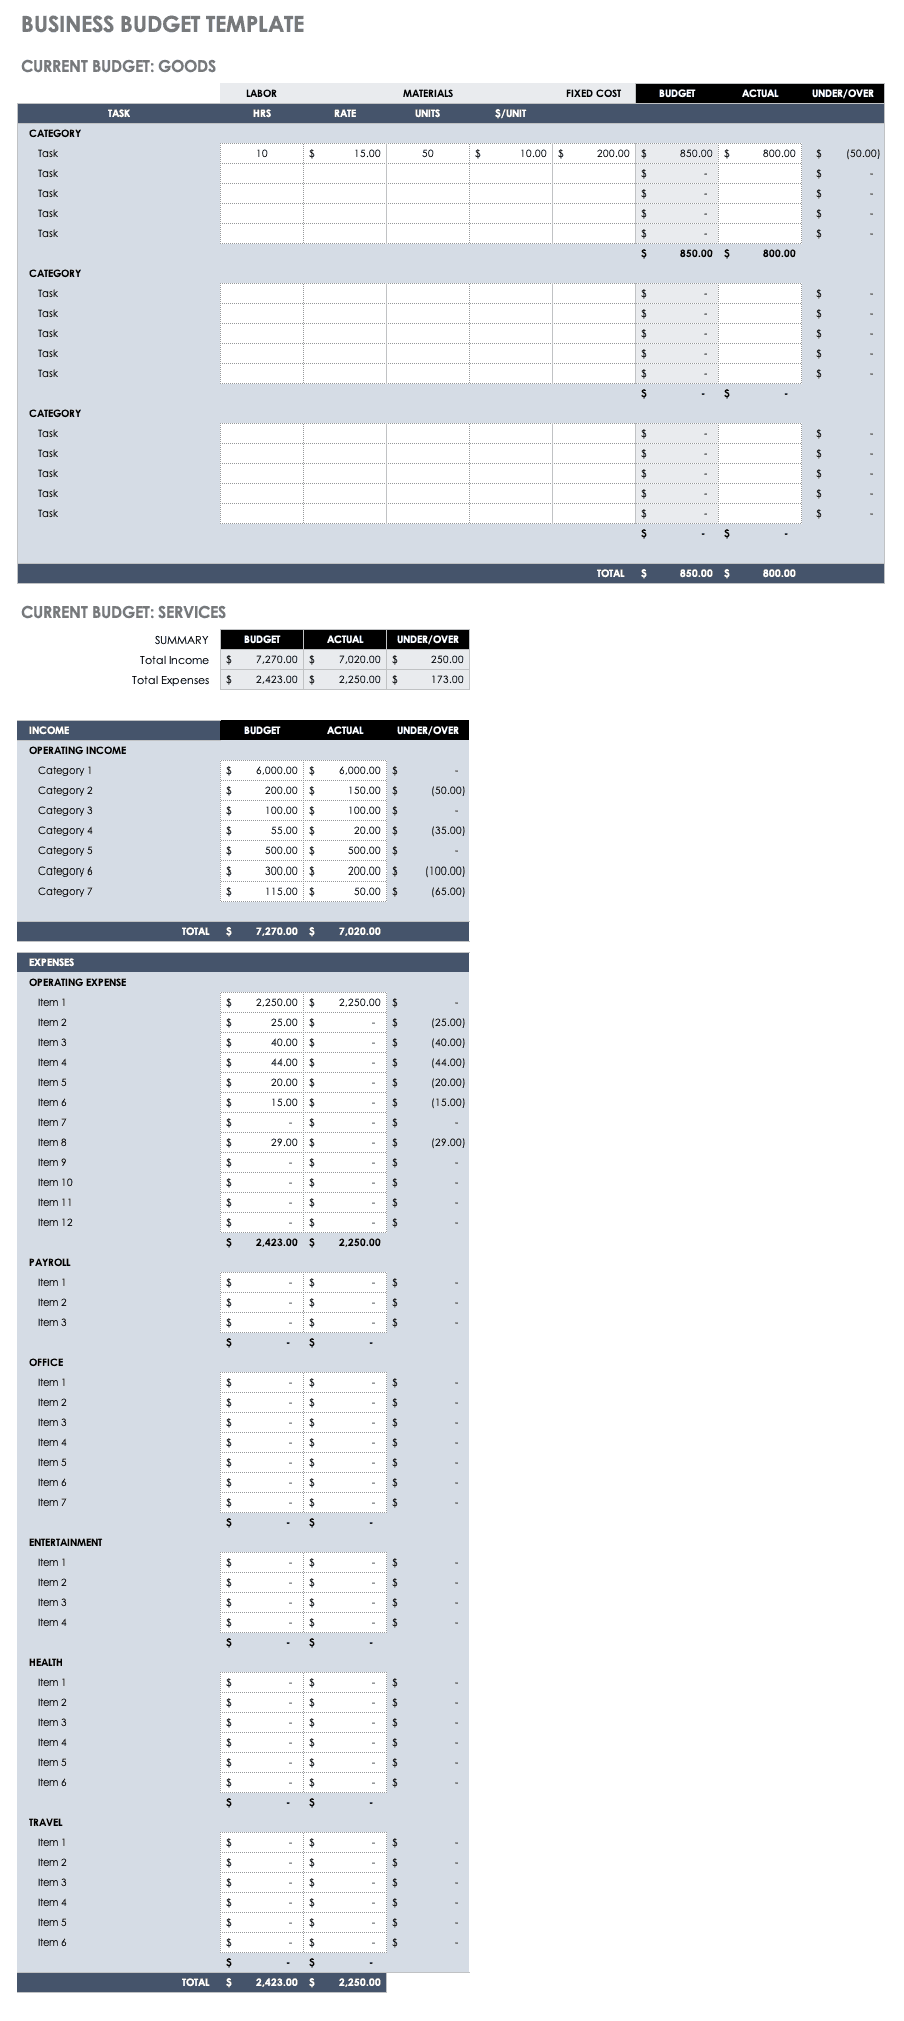 Business Budget Tracking Template